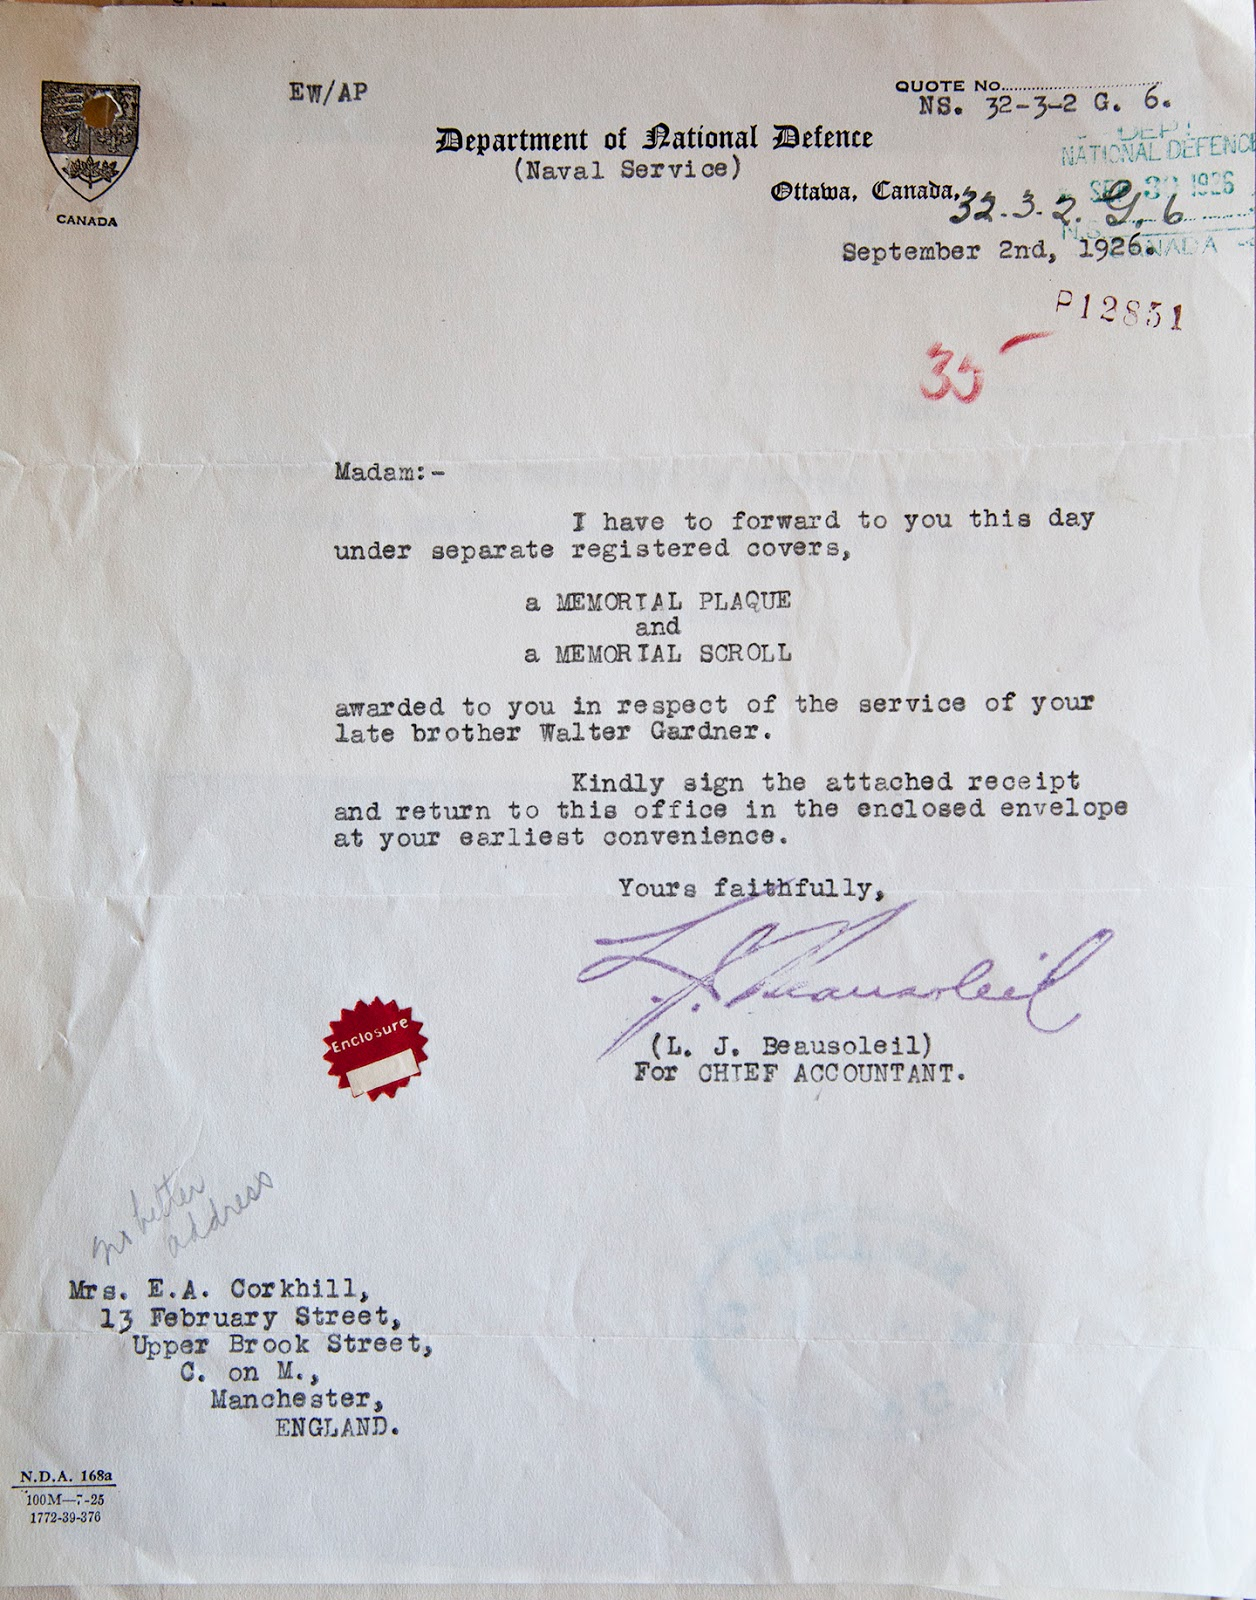 Letter– Letter accompanying Walter Gardner's memorial plaque and scroll.